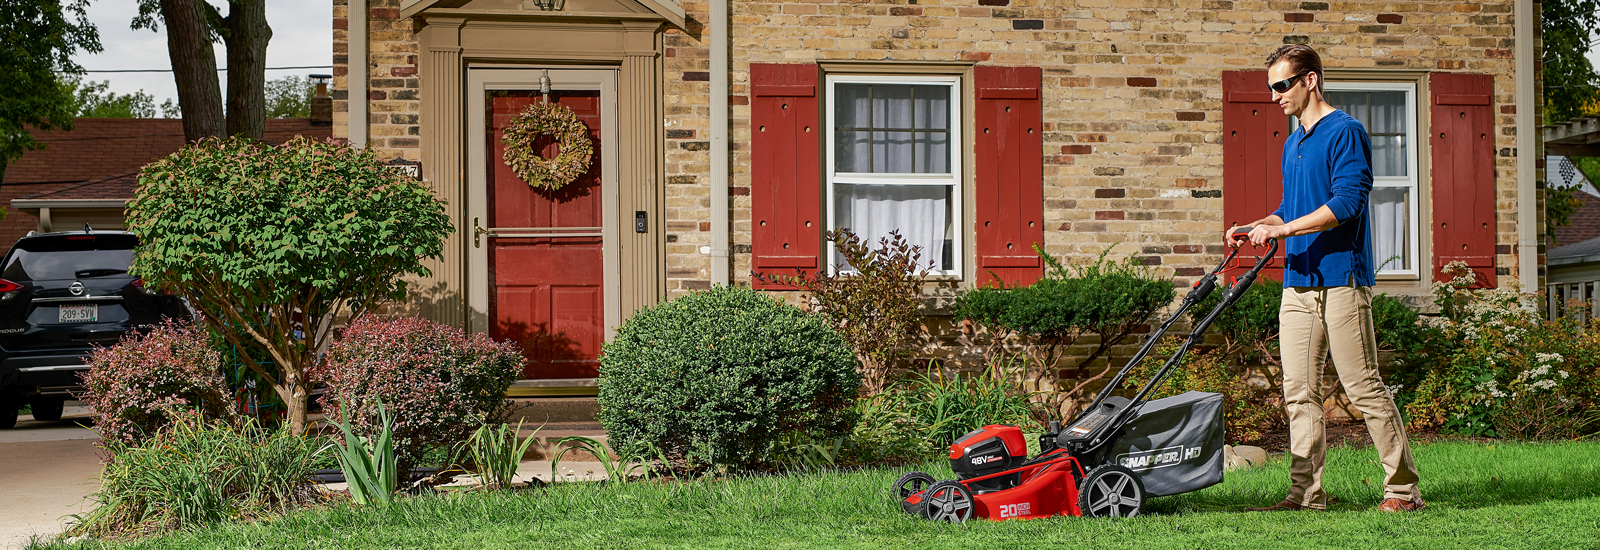 Snapper Electric Lawn Mowers